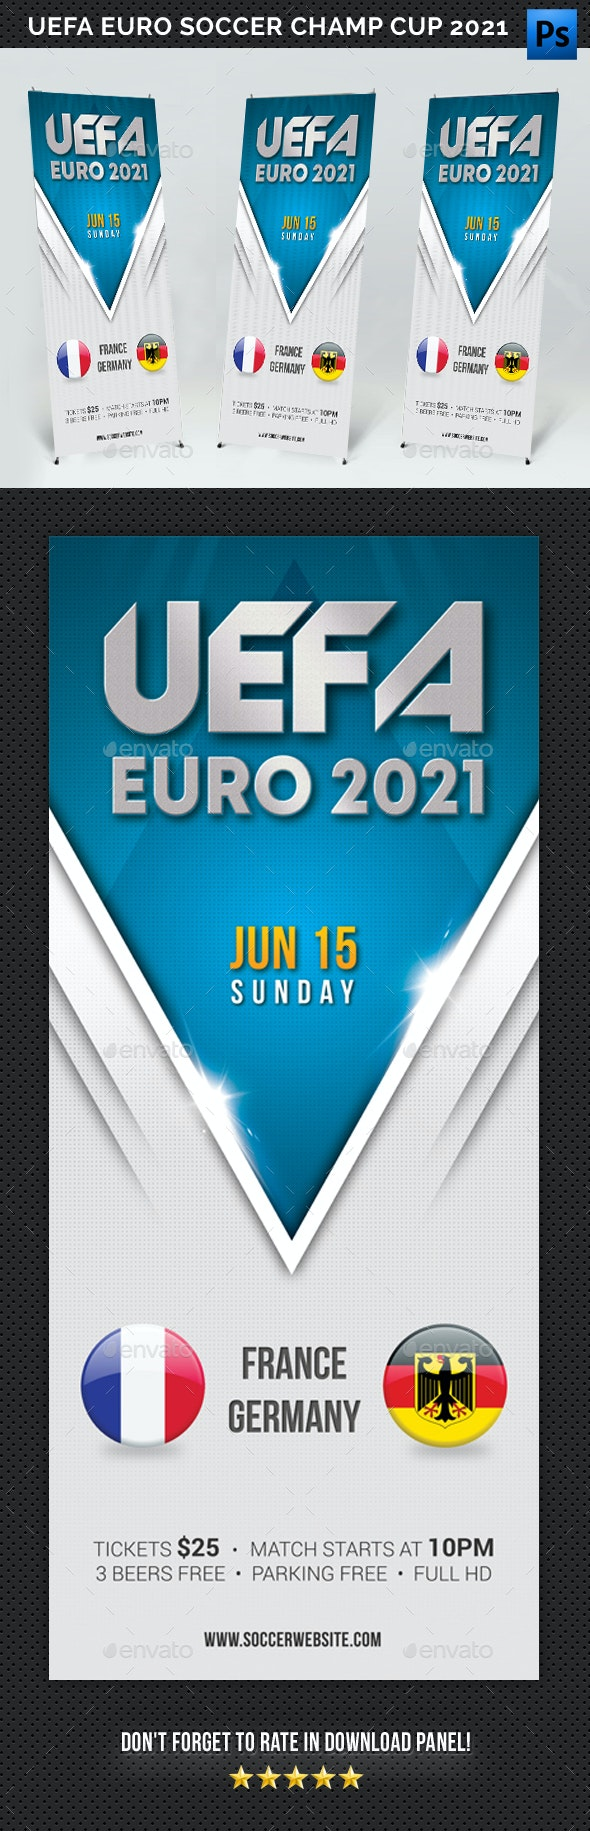 UEFA EURO Soccer Championship Cup 2021 Banner - Signage Print Templates